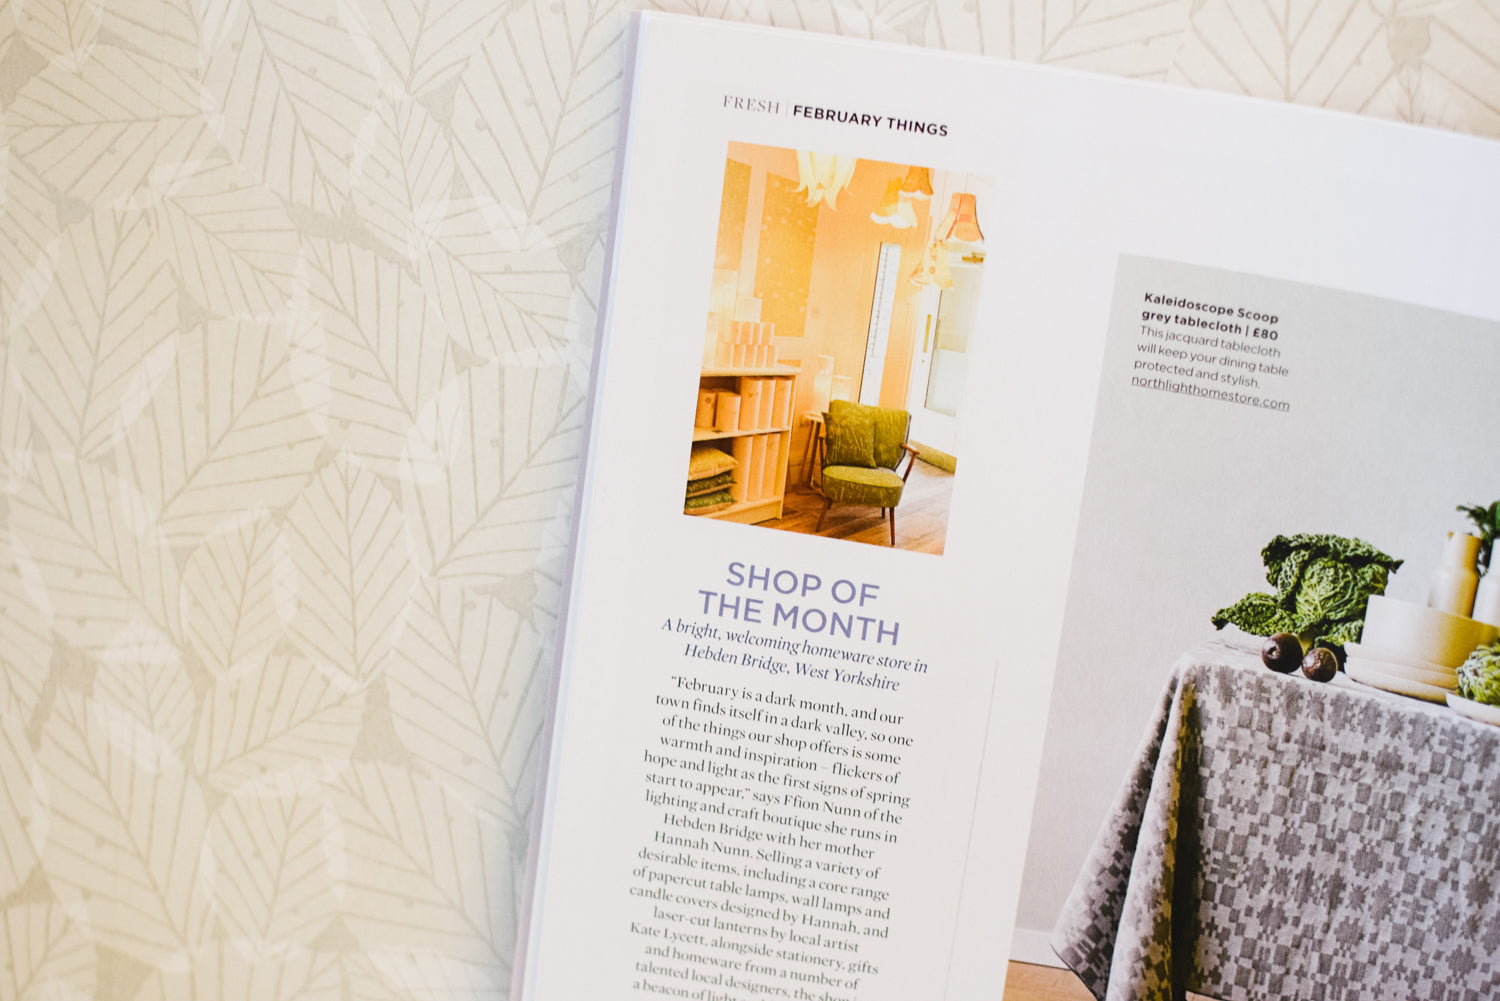 Radiance is The Simple Things magazine 'shop of the month' this February!